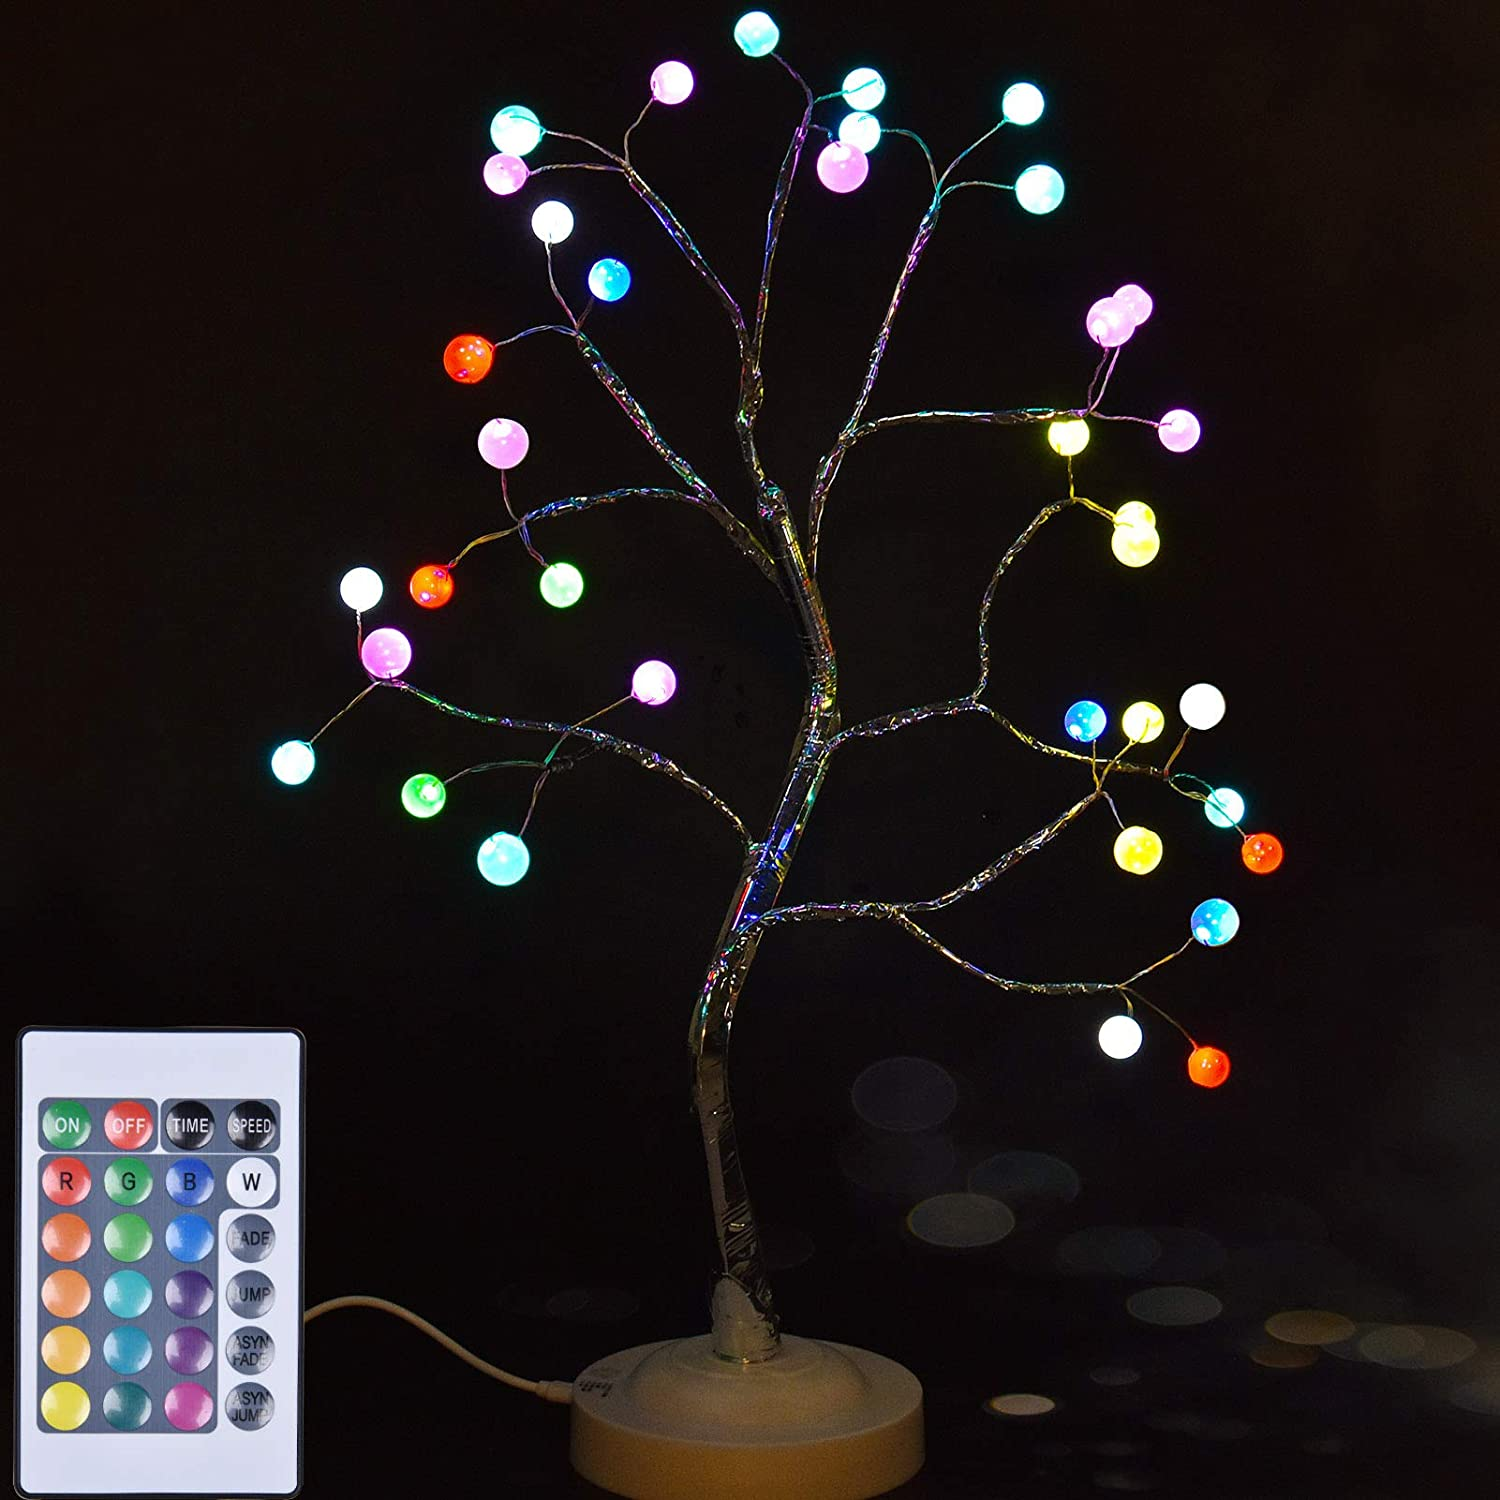 Tree Lamp Bonsai Tree Lights, Artificial Tabletop Tree Lights, 108-LED for Home Decor, Parties, Weddings, Holidays, and Gifts (Multicolor, with RC)